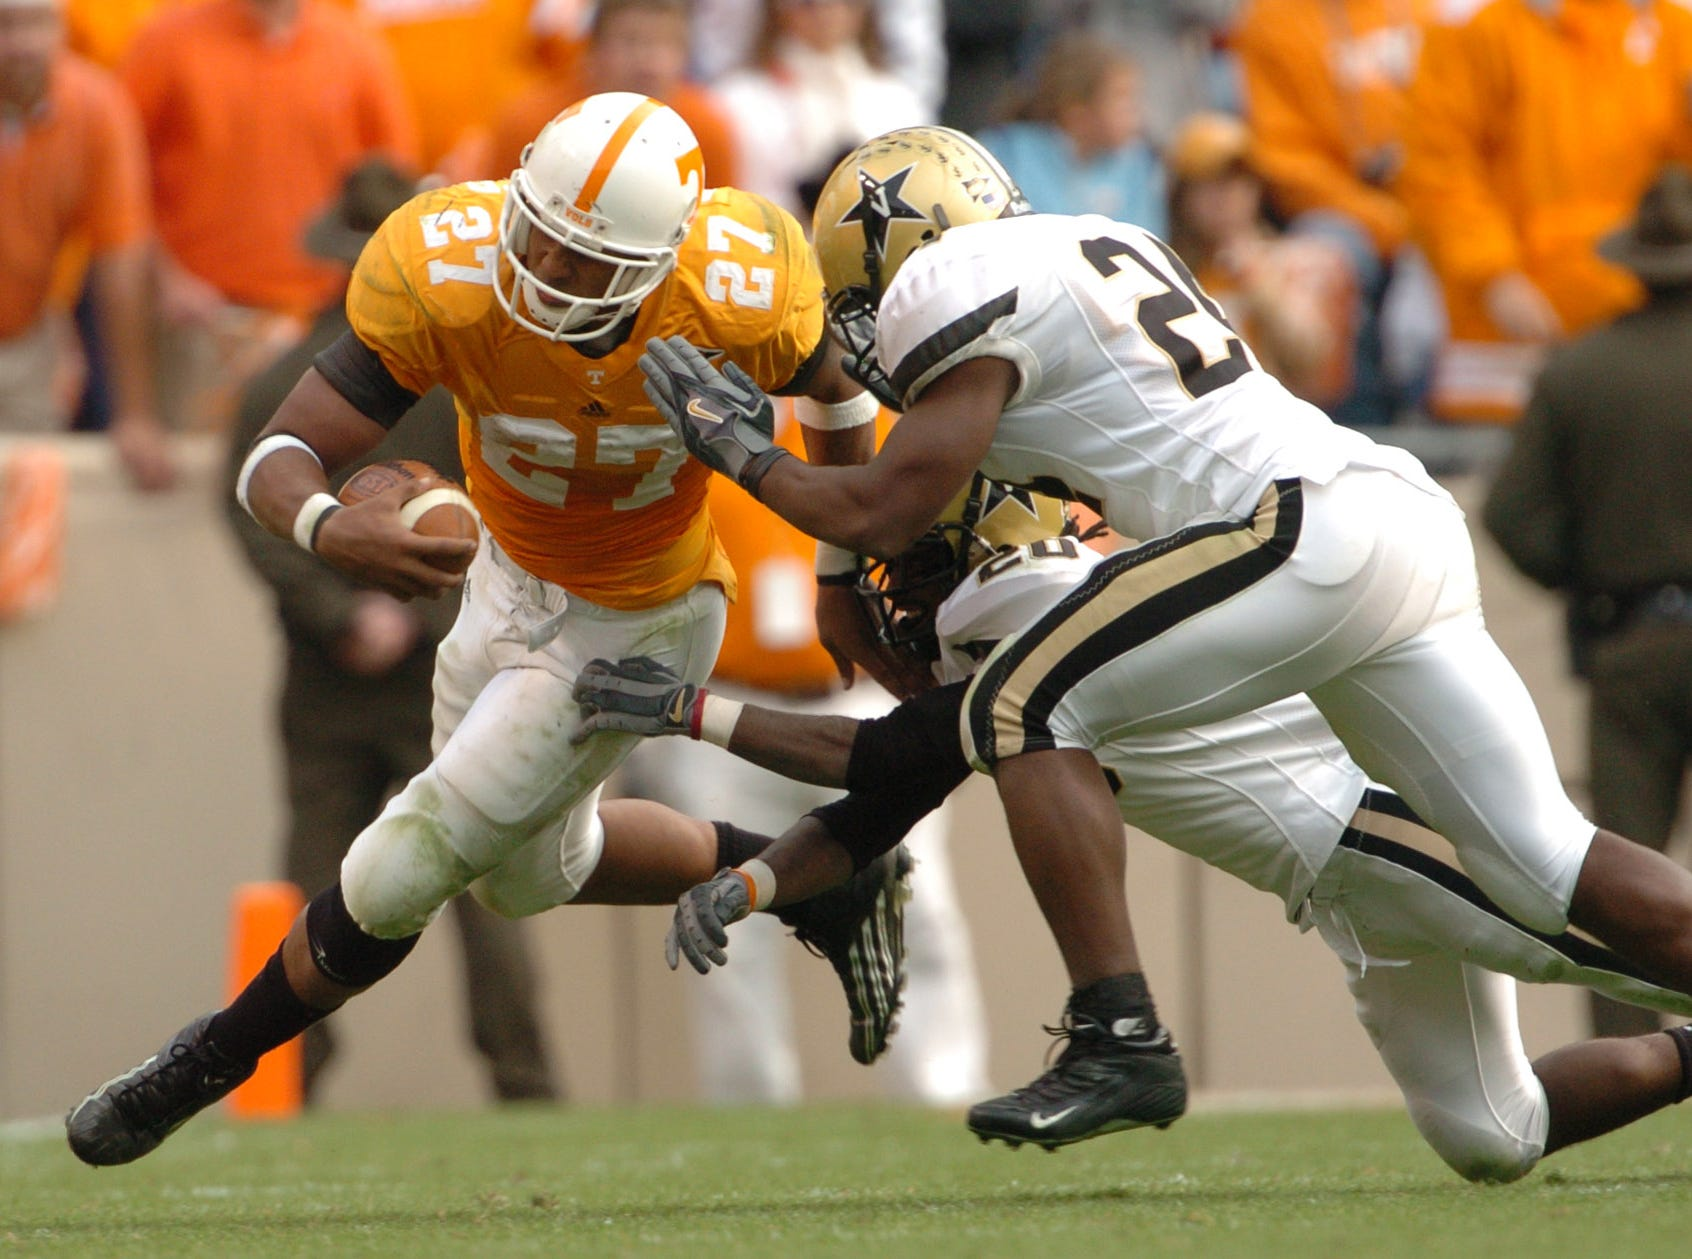 UT's Arian Foster (27) gets chased down by Vanderbilt defenders at Neyland Stadium Saturday afternoon on 11/19/2005.